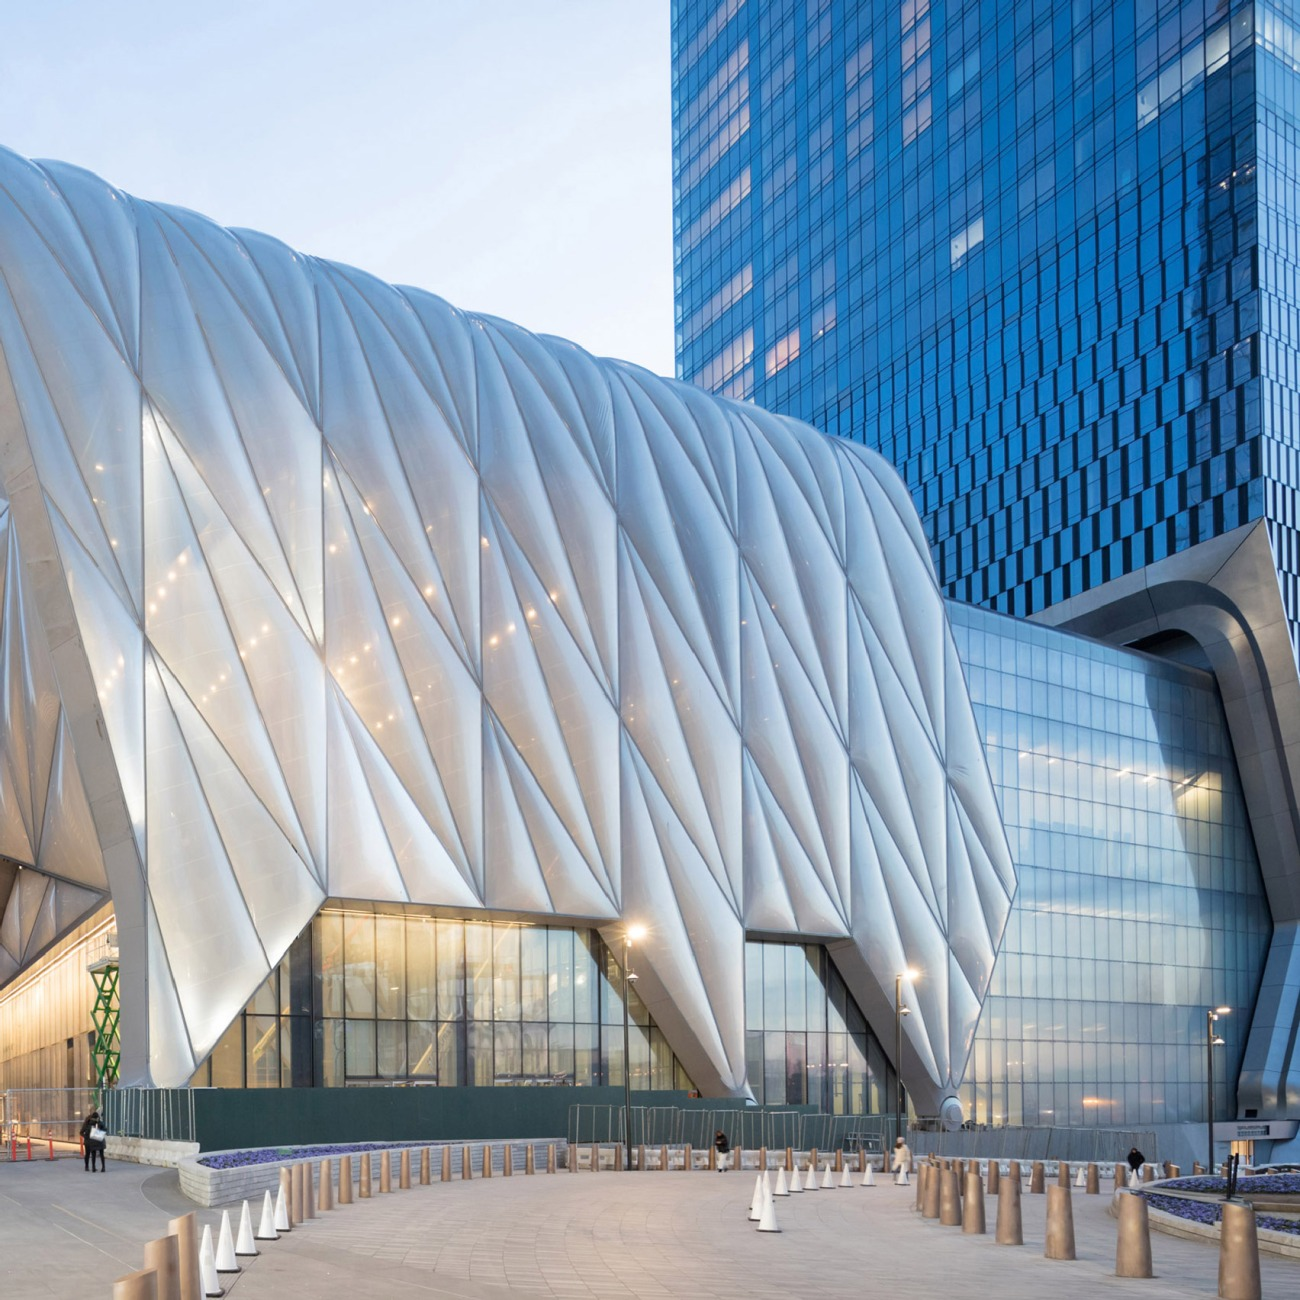 The Shed, New York, USA, by Diller Scofidio + Renfro and Rockwell Group